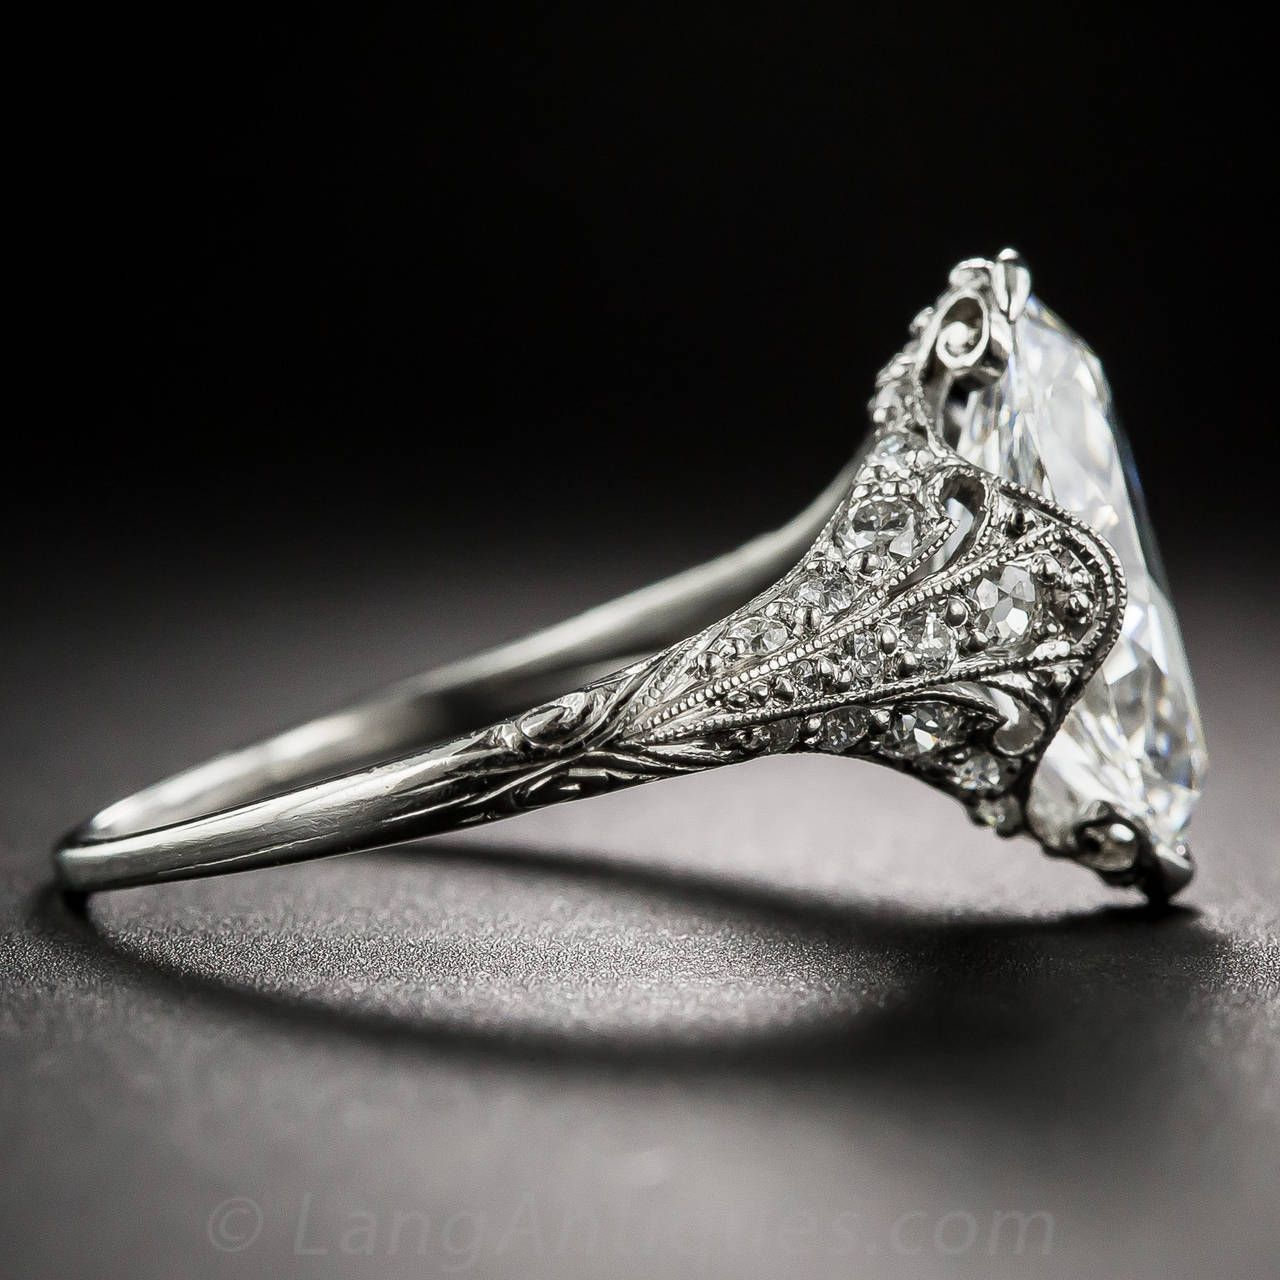 tiffany and co edwardian carat marquise diamond platinum ring marquise diamond platinum. Black Bedroom Furniture Sets. Home Design Ideas